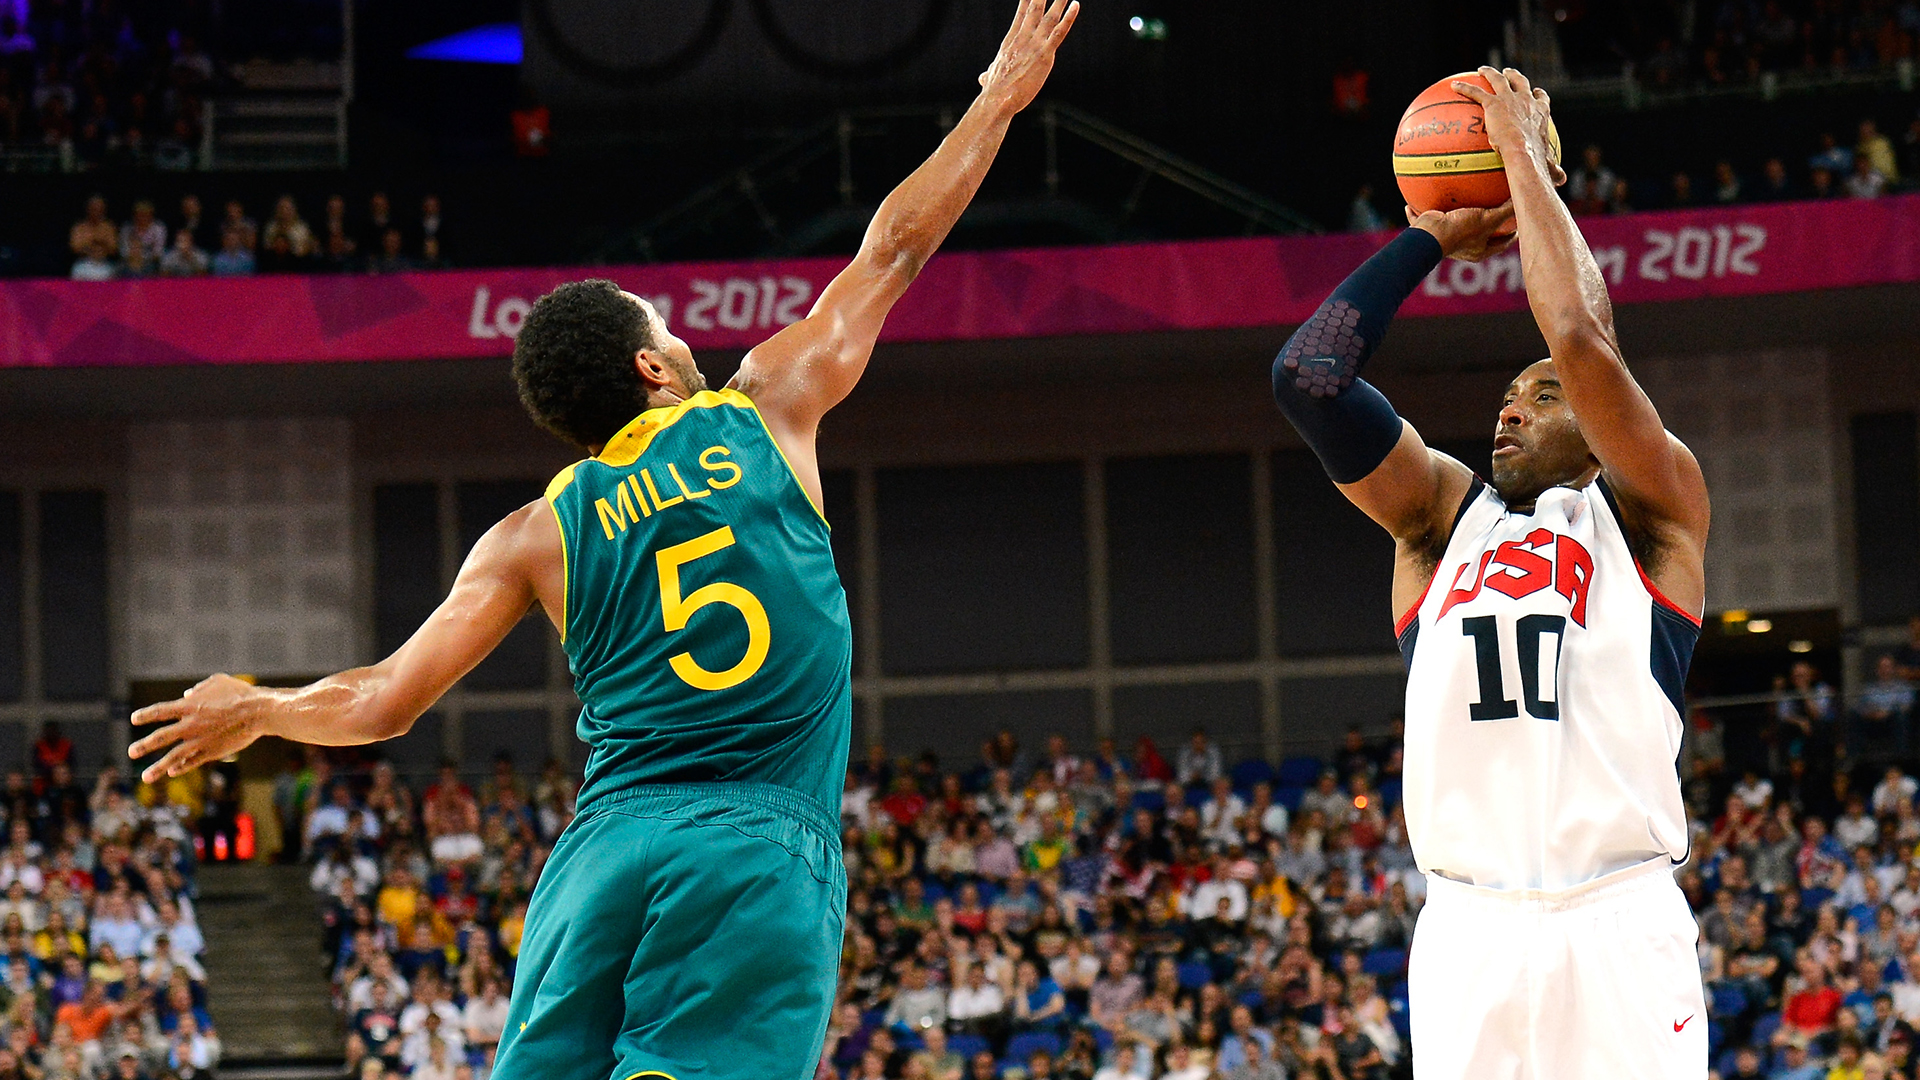 Kobe Bryant takes a shot in the 2012 Olympics